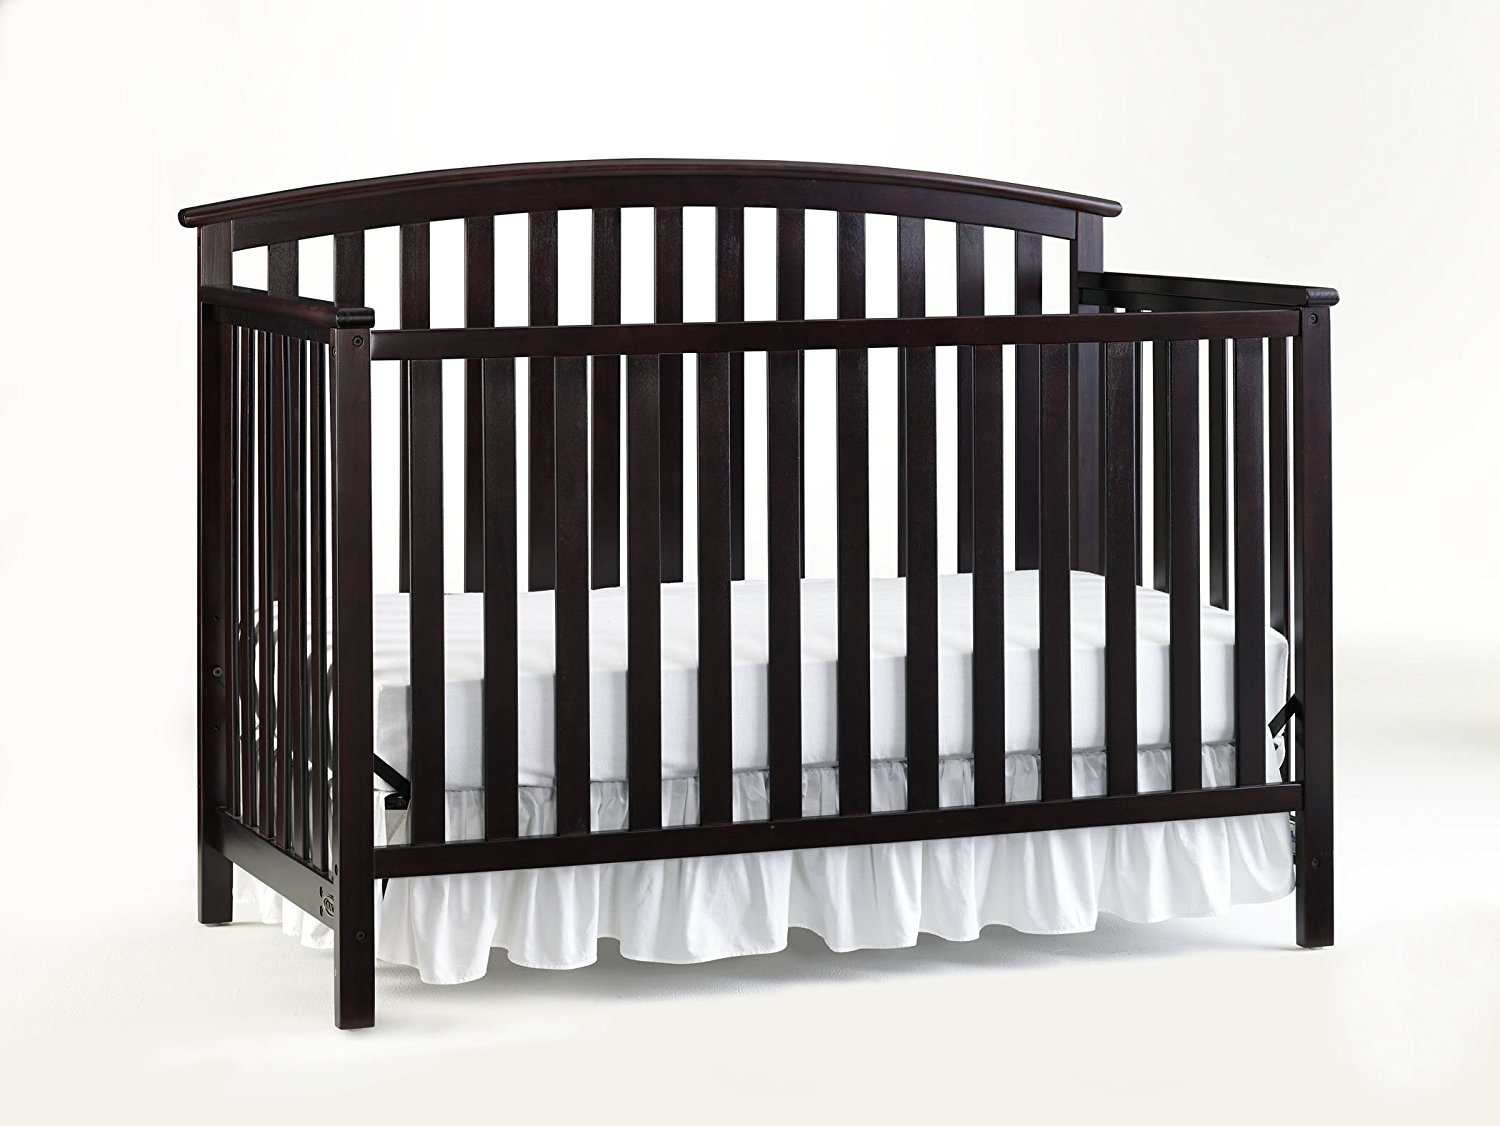 Best way for baby to sleep in crib - Stylish And Elegant Is The Best Possible Way To Describe This Crib It Is A Very Stylish Crib That Can Be Converted 4 Different Ways Into A Crib